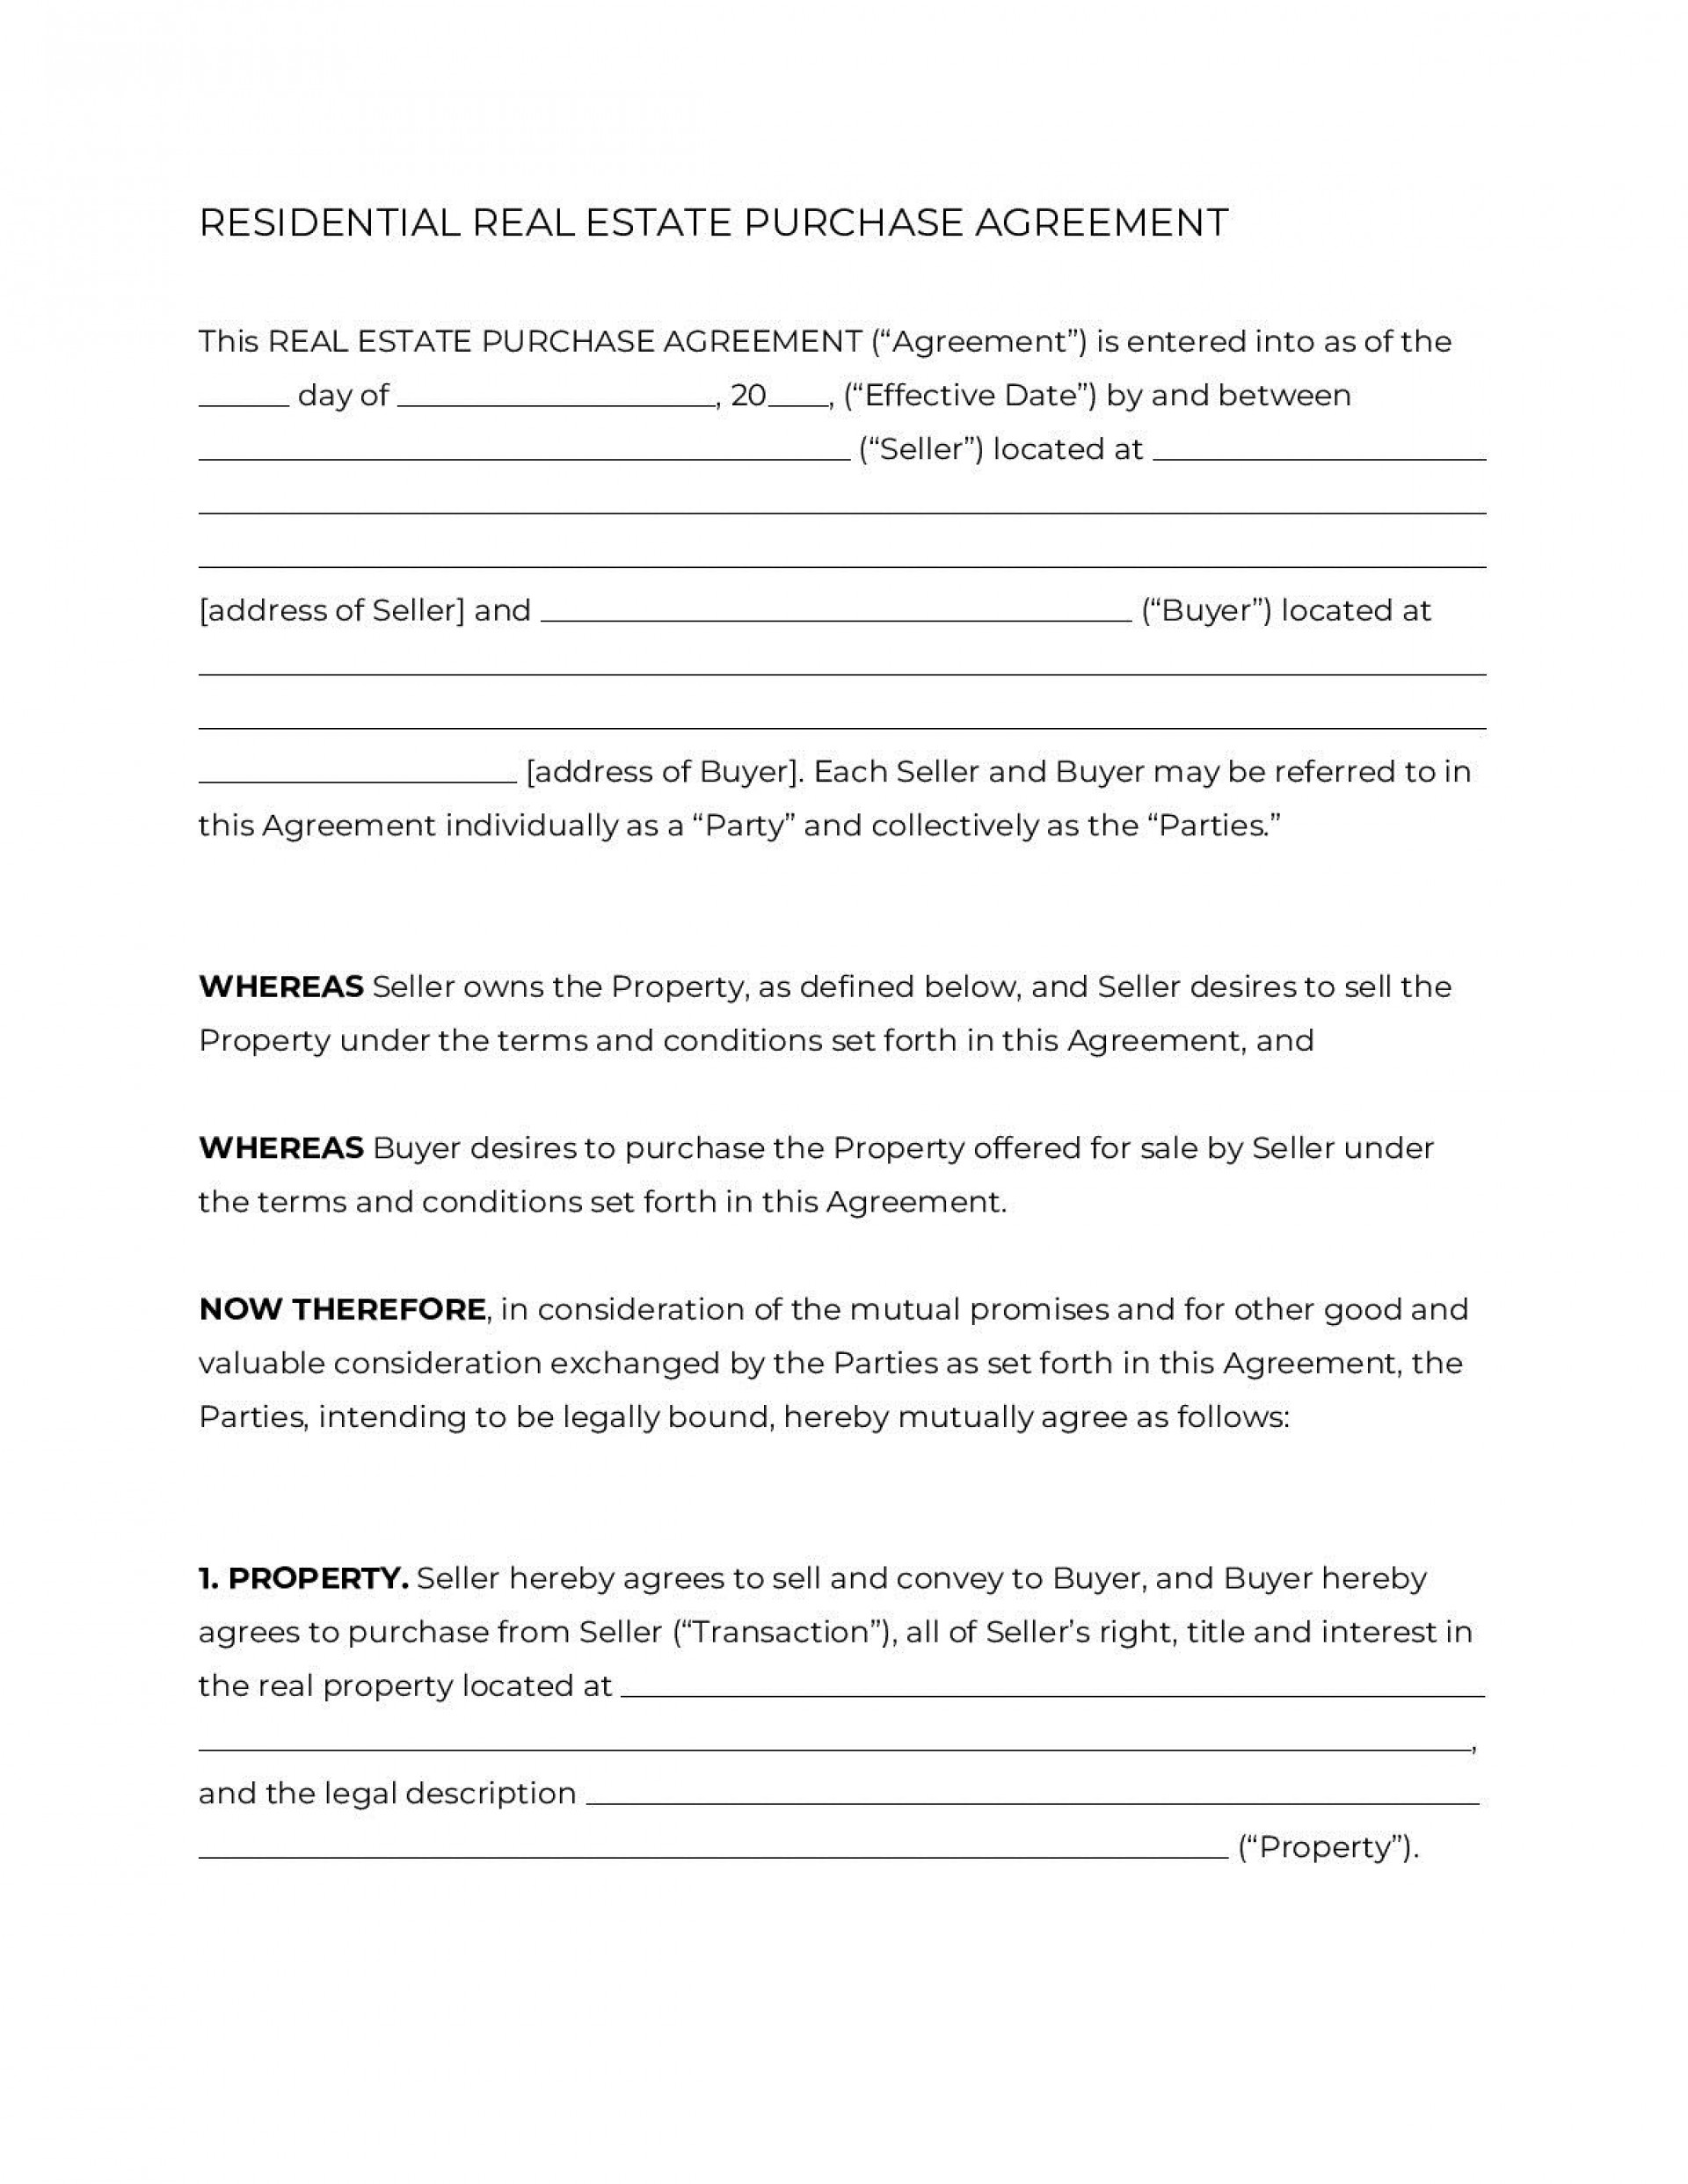 008 Breathtaking Home Purchase Agreement Template Michigan Concept 1920